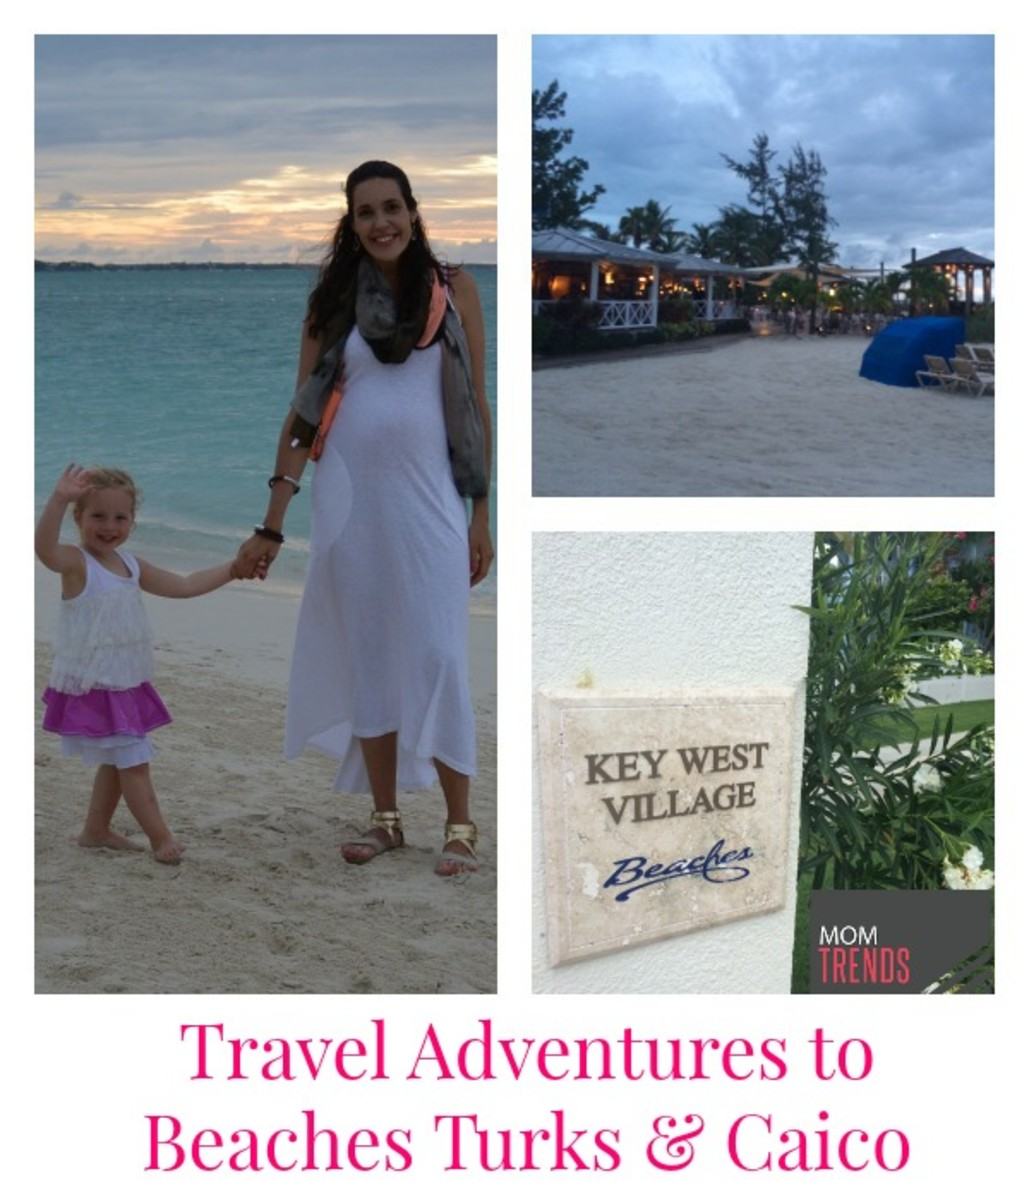 Travel Adventures to Beaches Turks & Caico.jpg.jpg